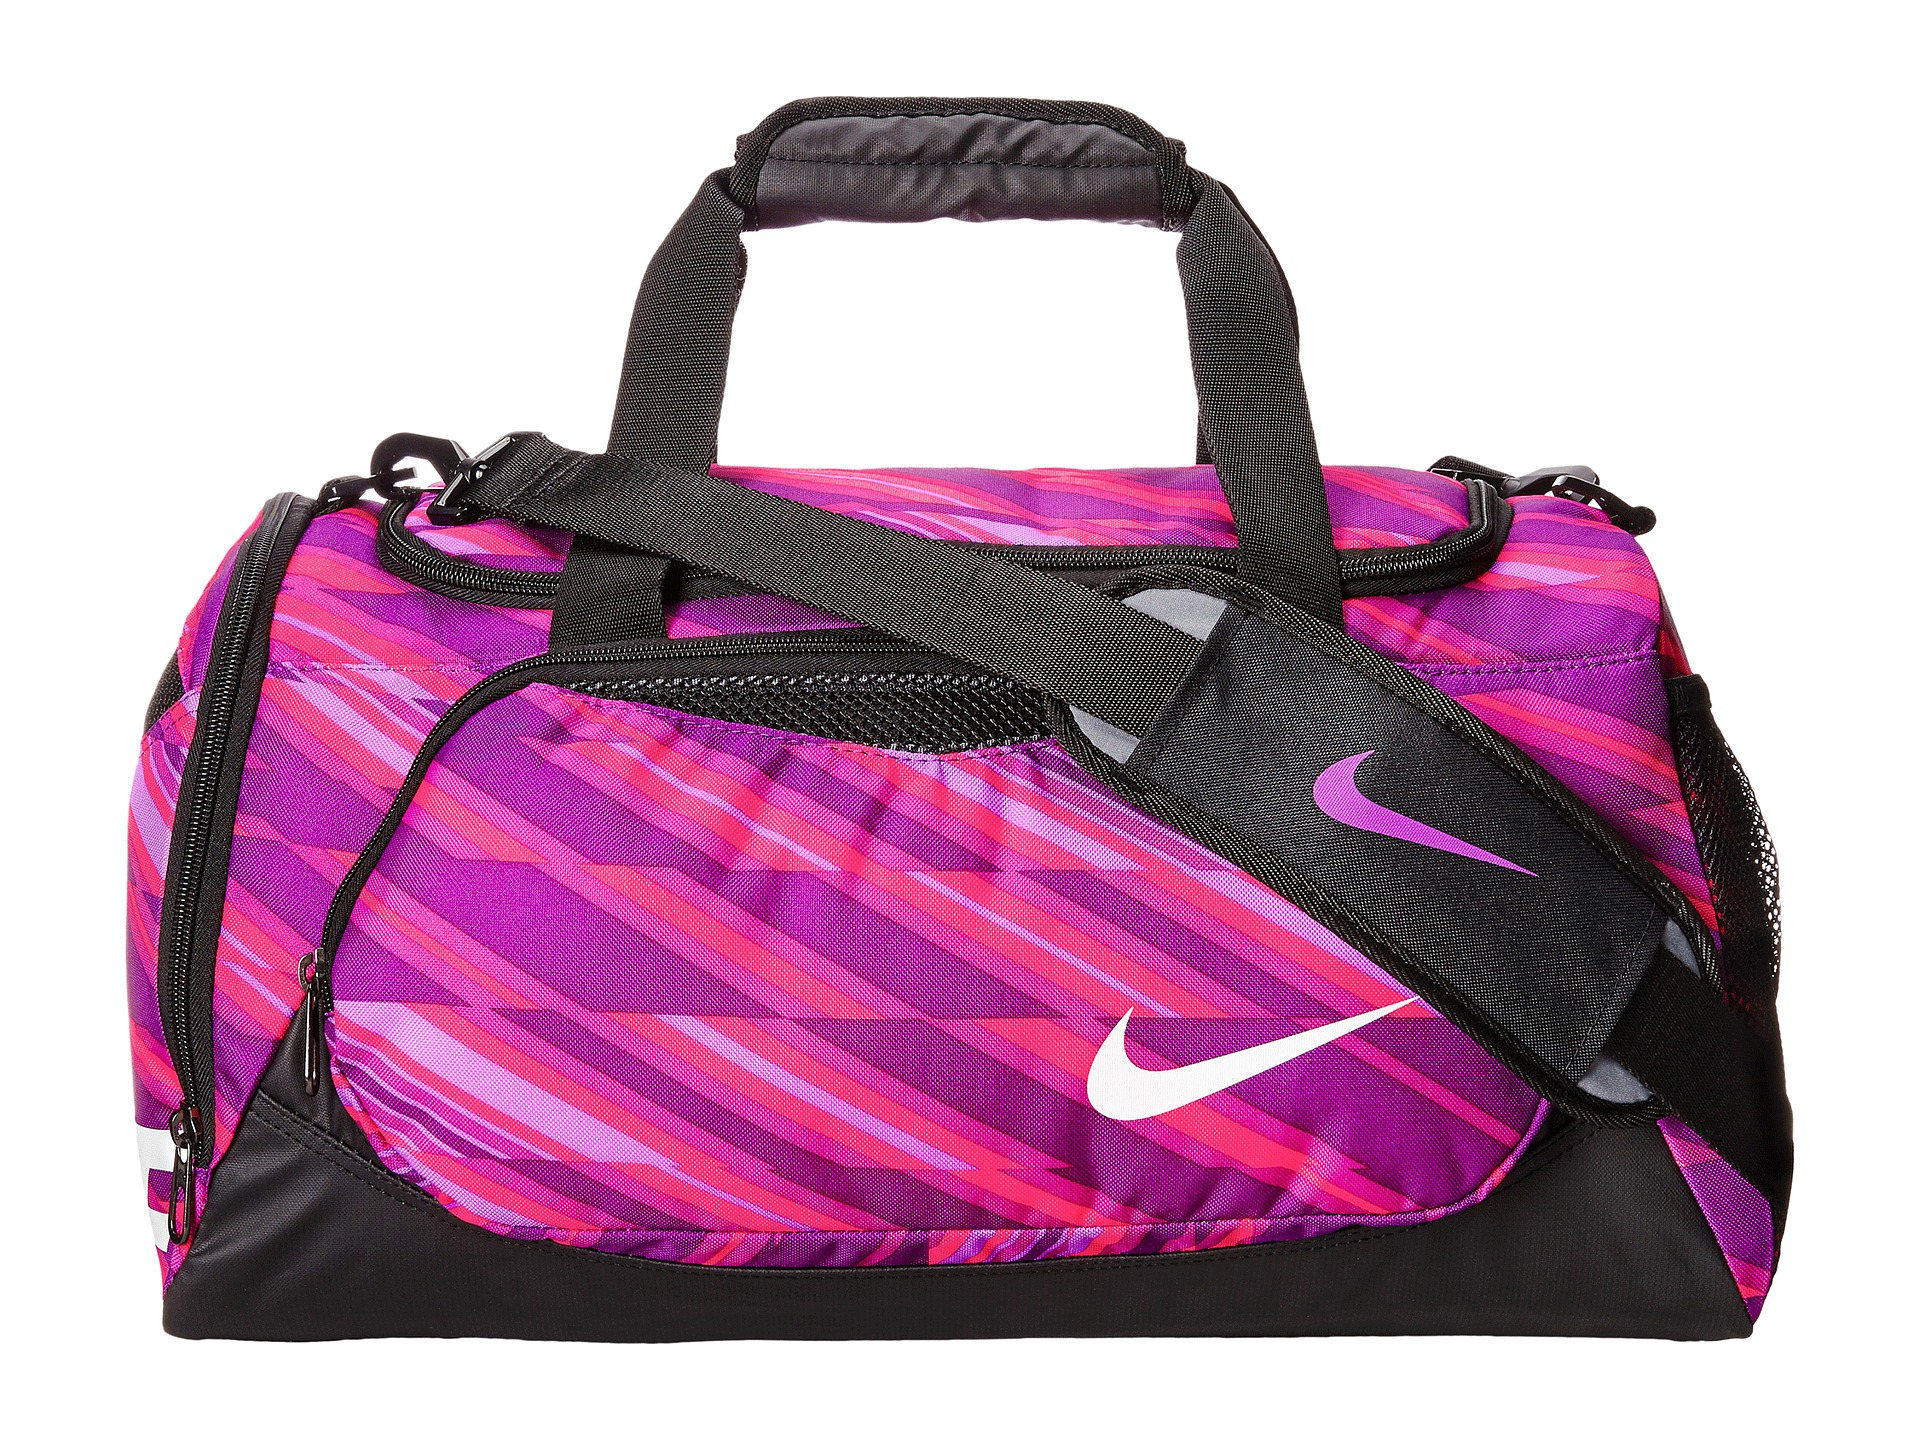 Lyst - Nike Young Athletes Team Training Small Duffel in Purple 94f2511de080b